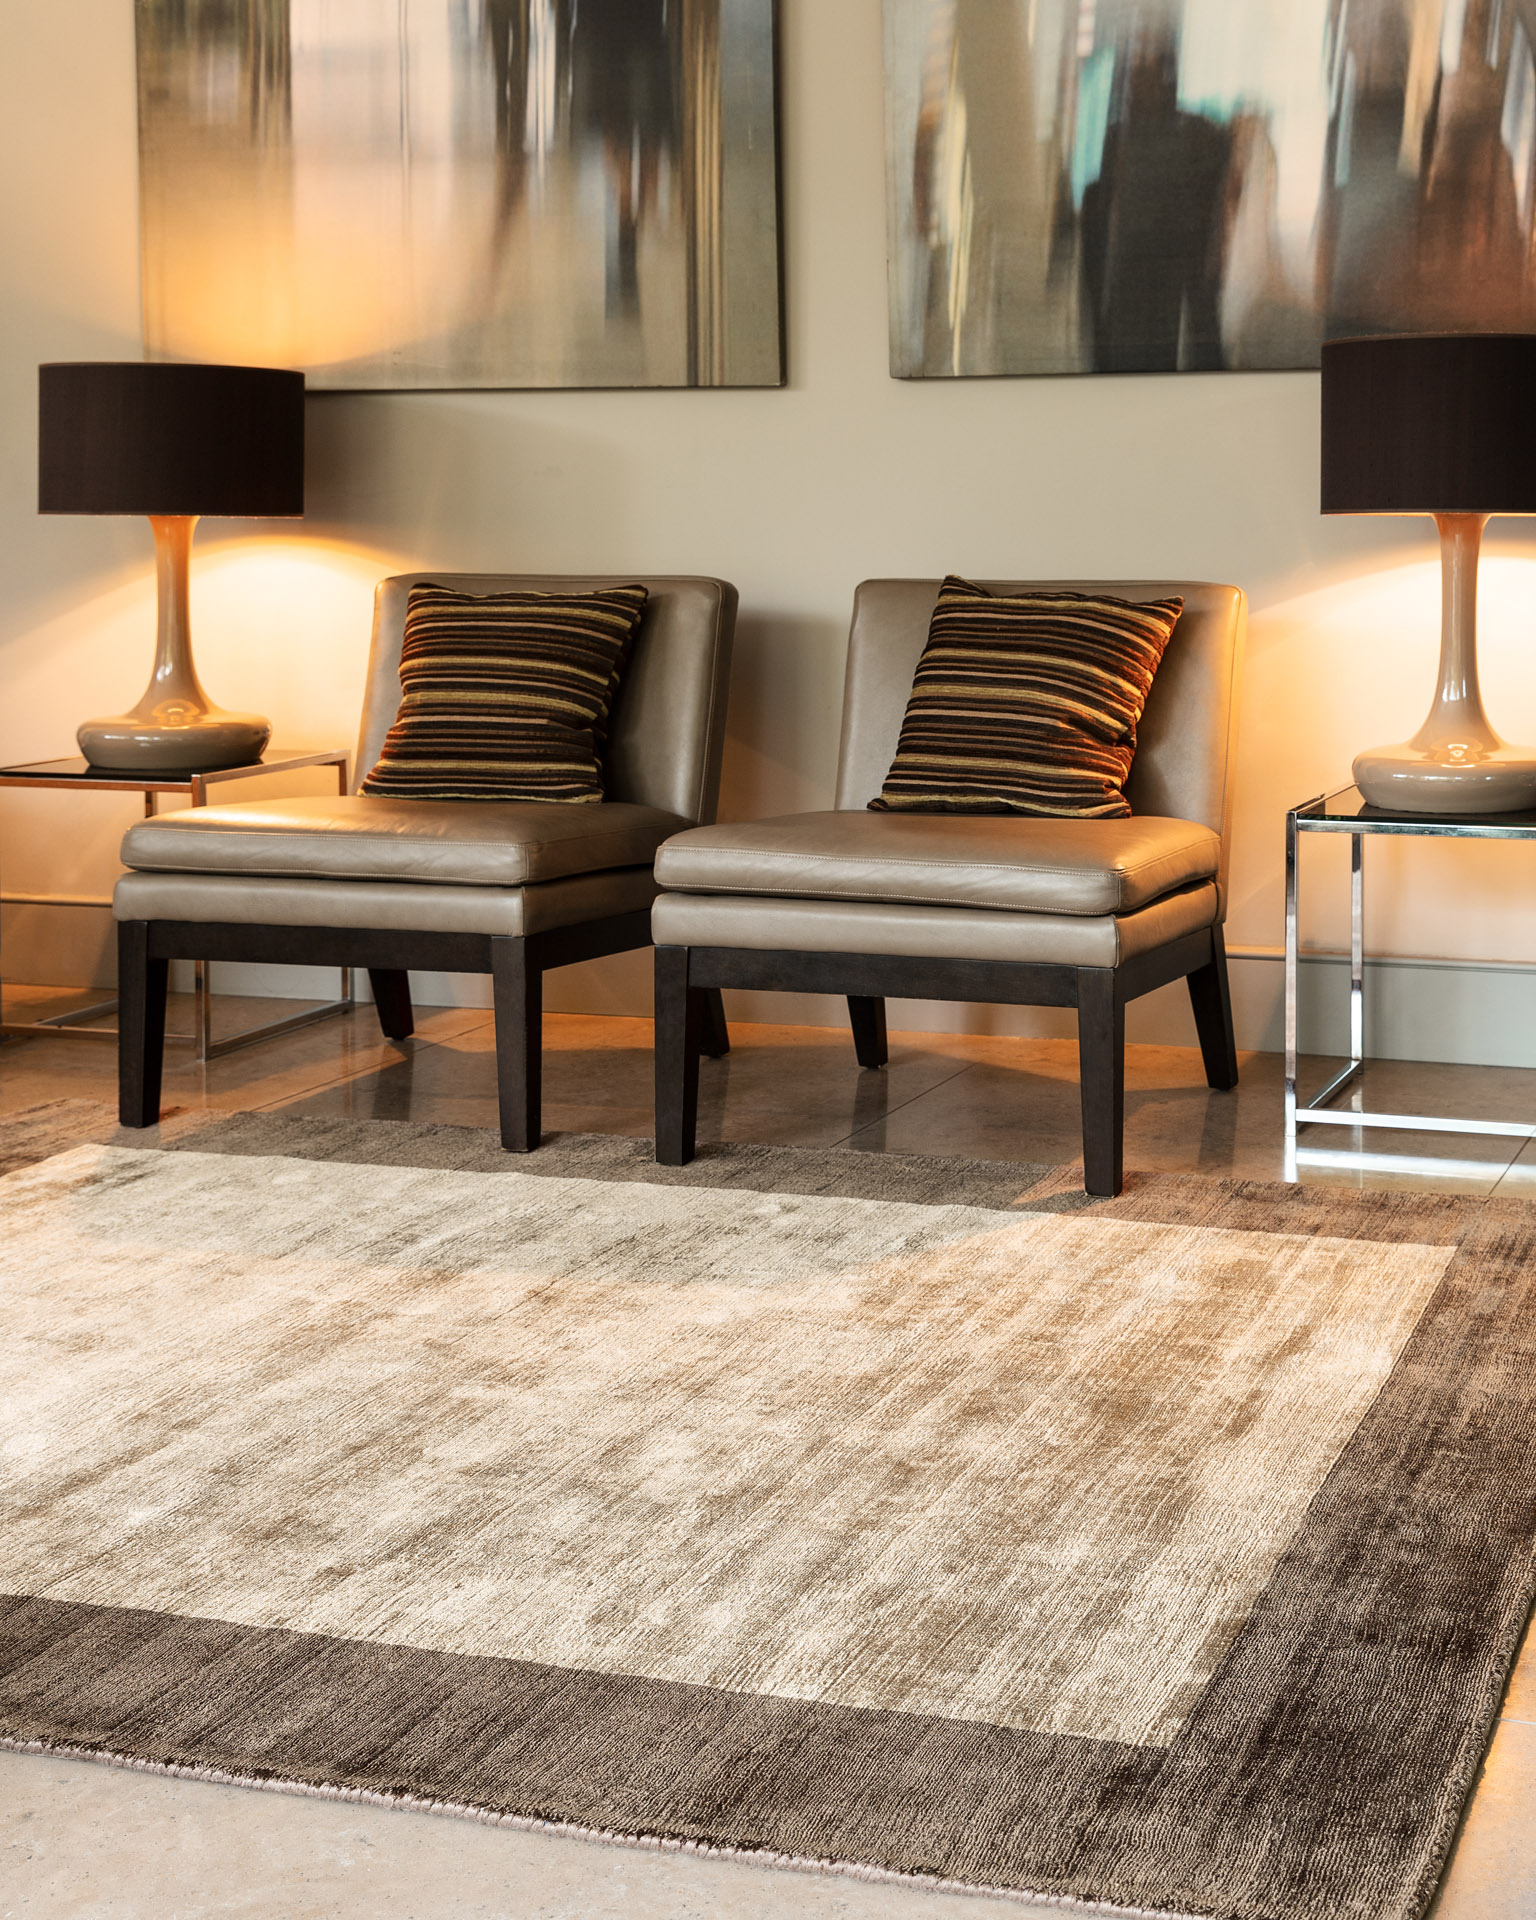 Blade Border Chocolate Mocha Square Rug in room with chairs